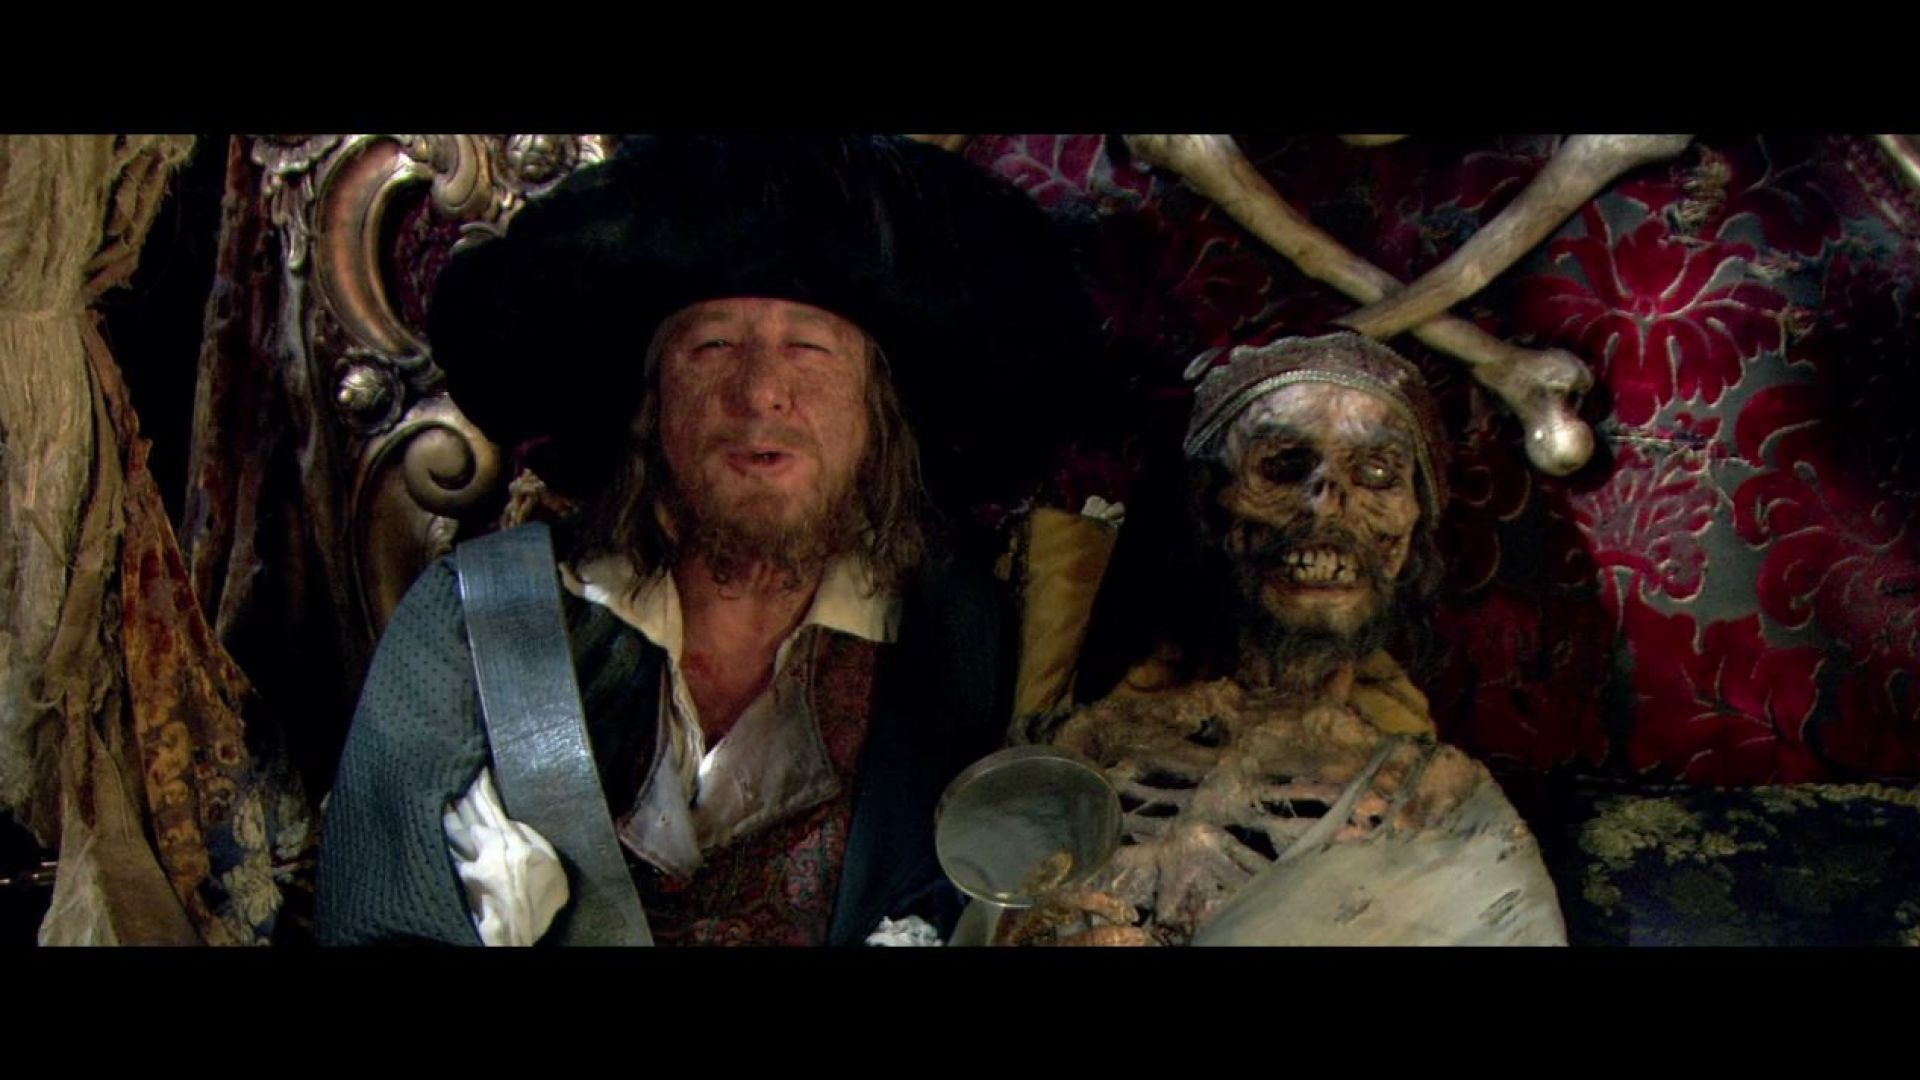 From Disneyland to Pirates of the Caribbean 4